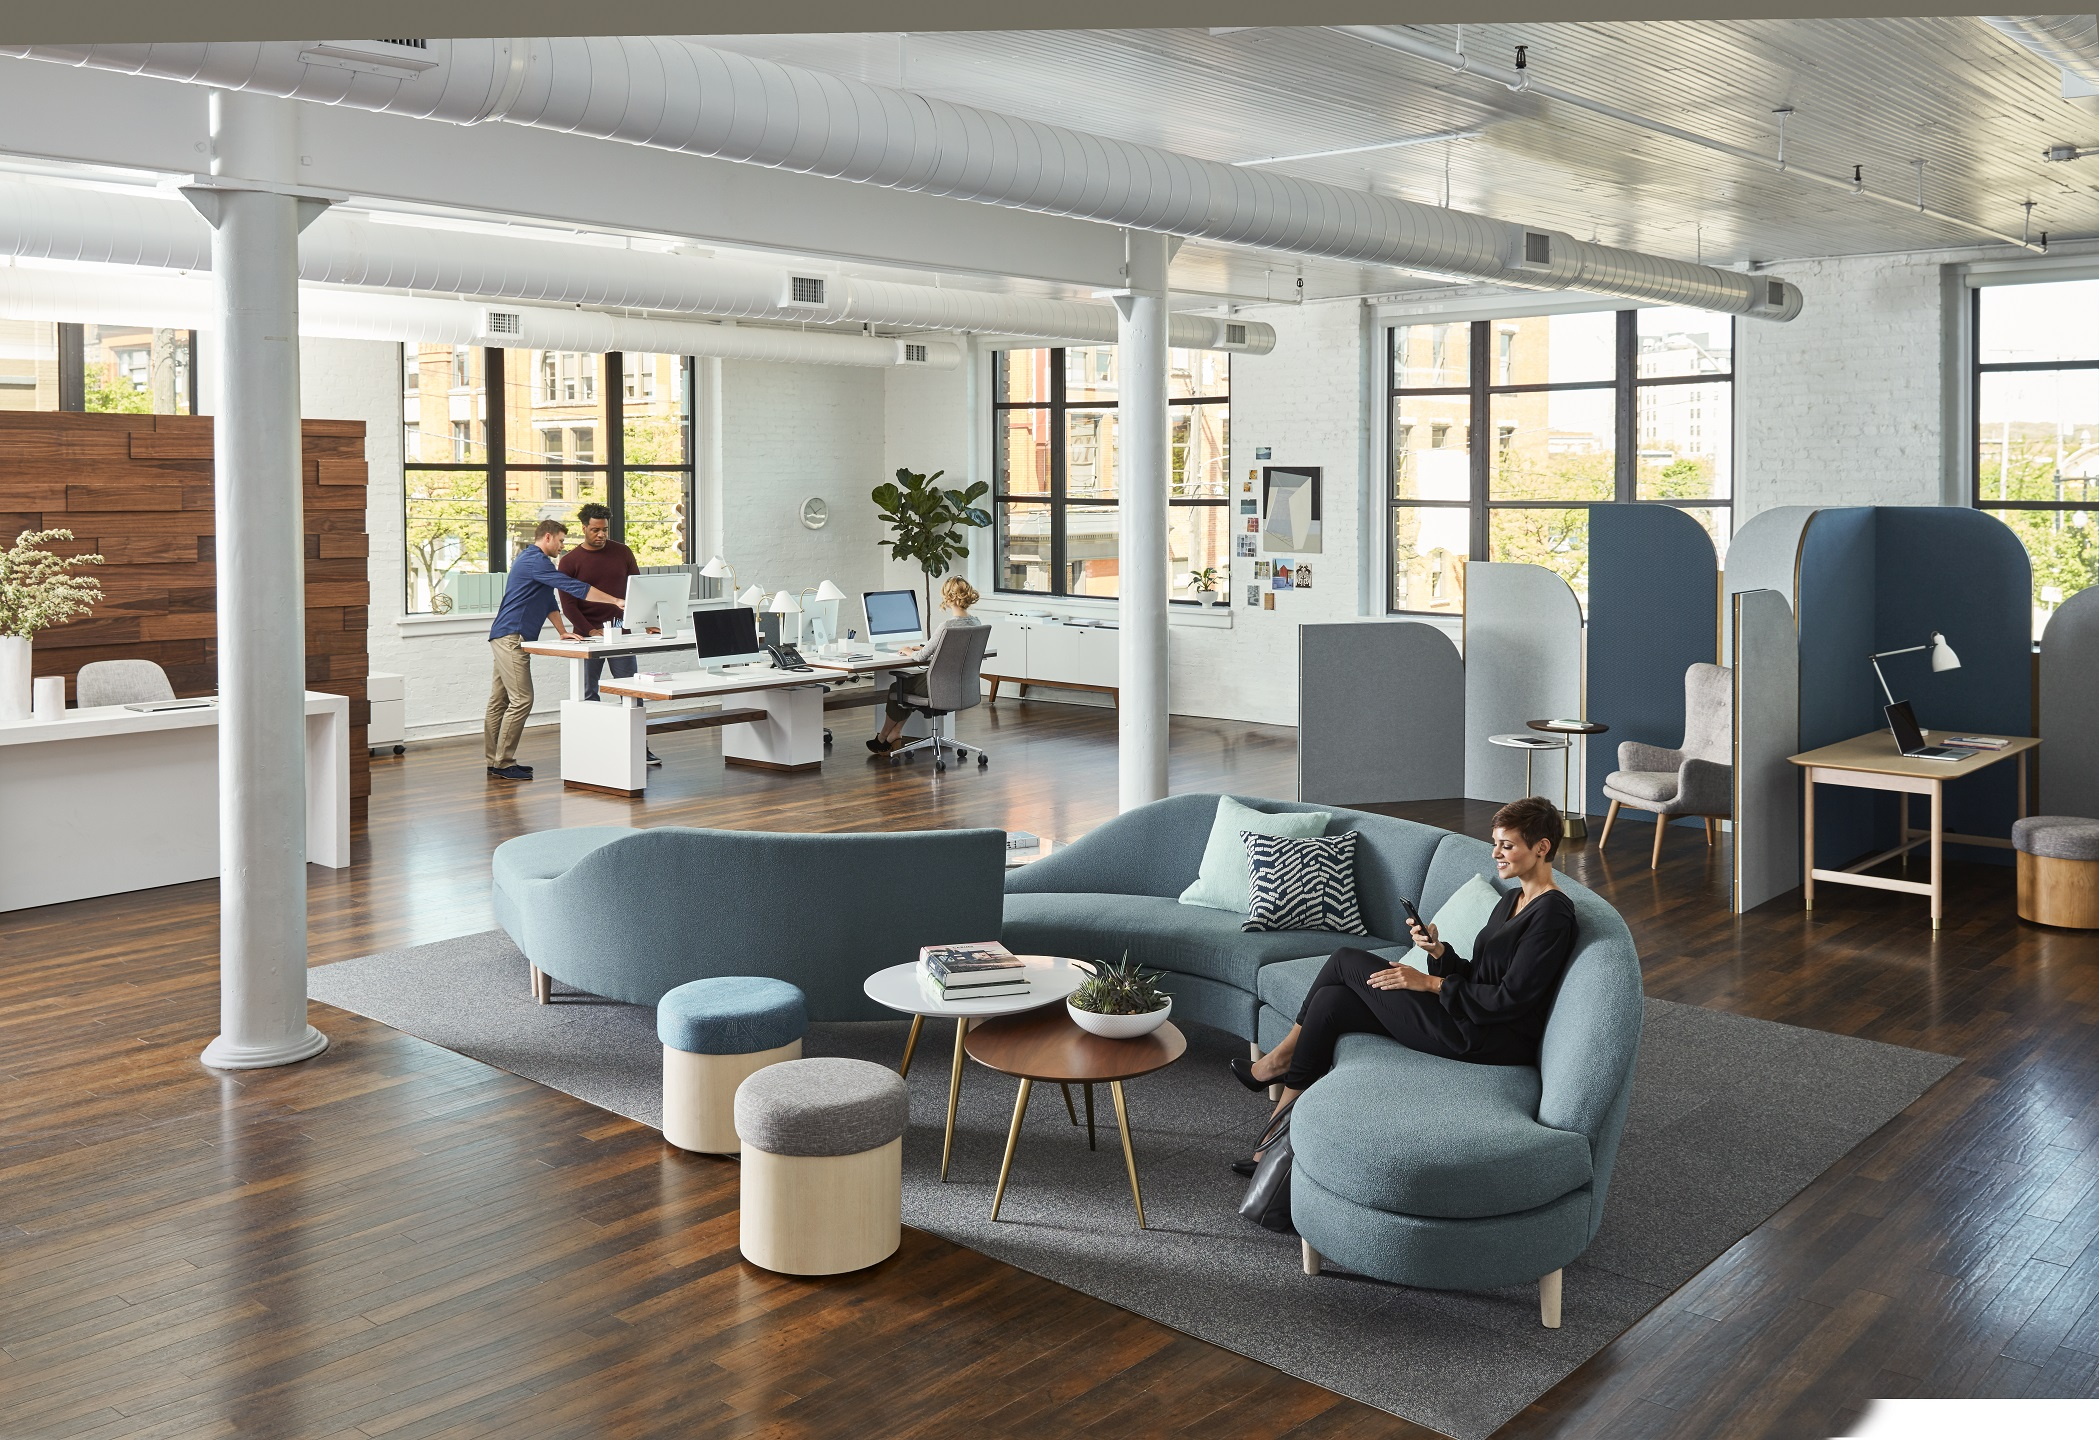 West Elm Workspace Continues To Push The Industry At NeoCon 2016 And Beyond